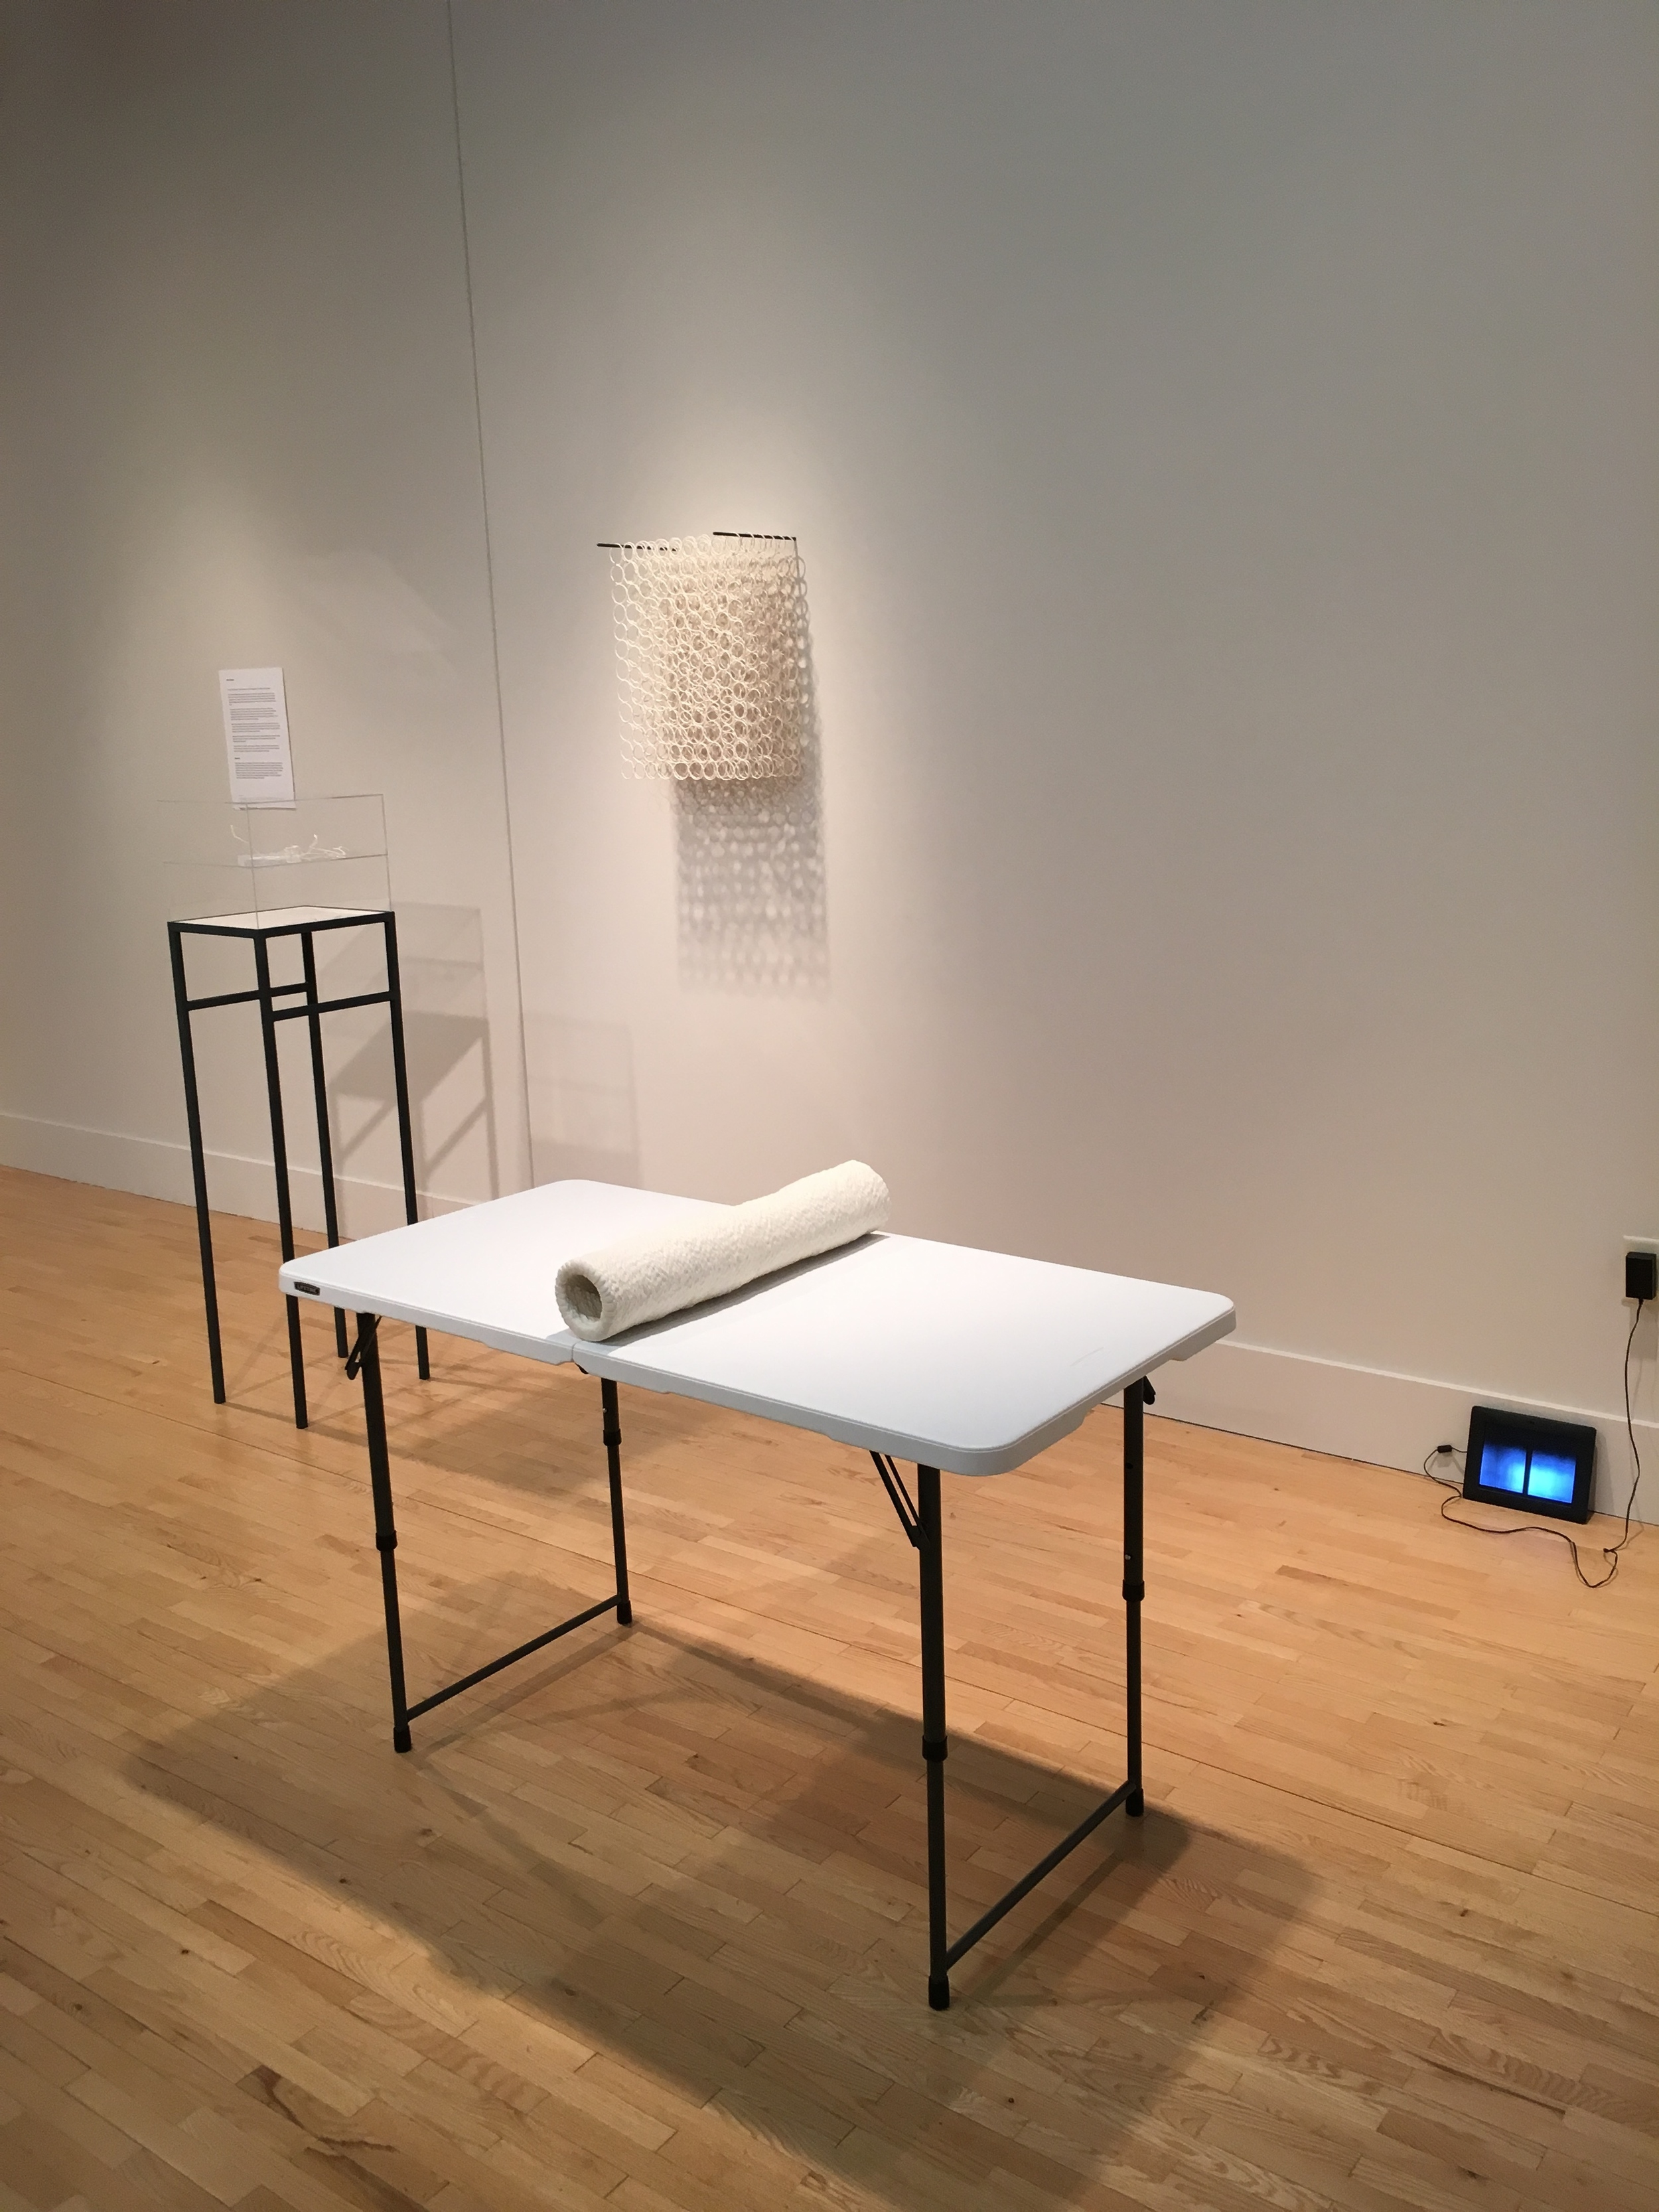 untitled : part of an invitational exhibition titled  Drawn | Dredged , at the Federal Gallery, Kendall College of Art and Design, Grand Rapids, MI.